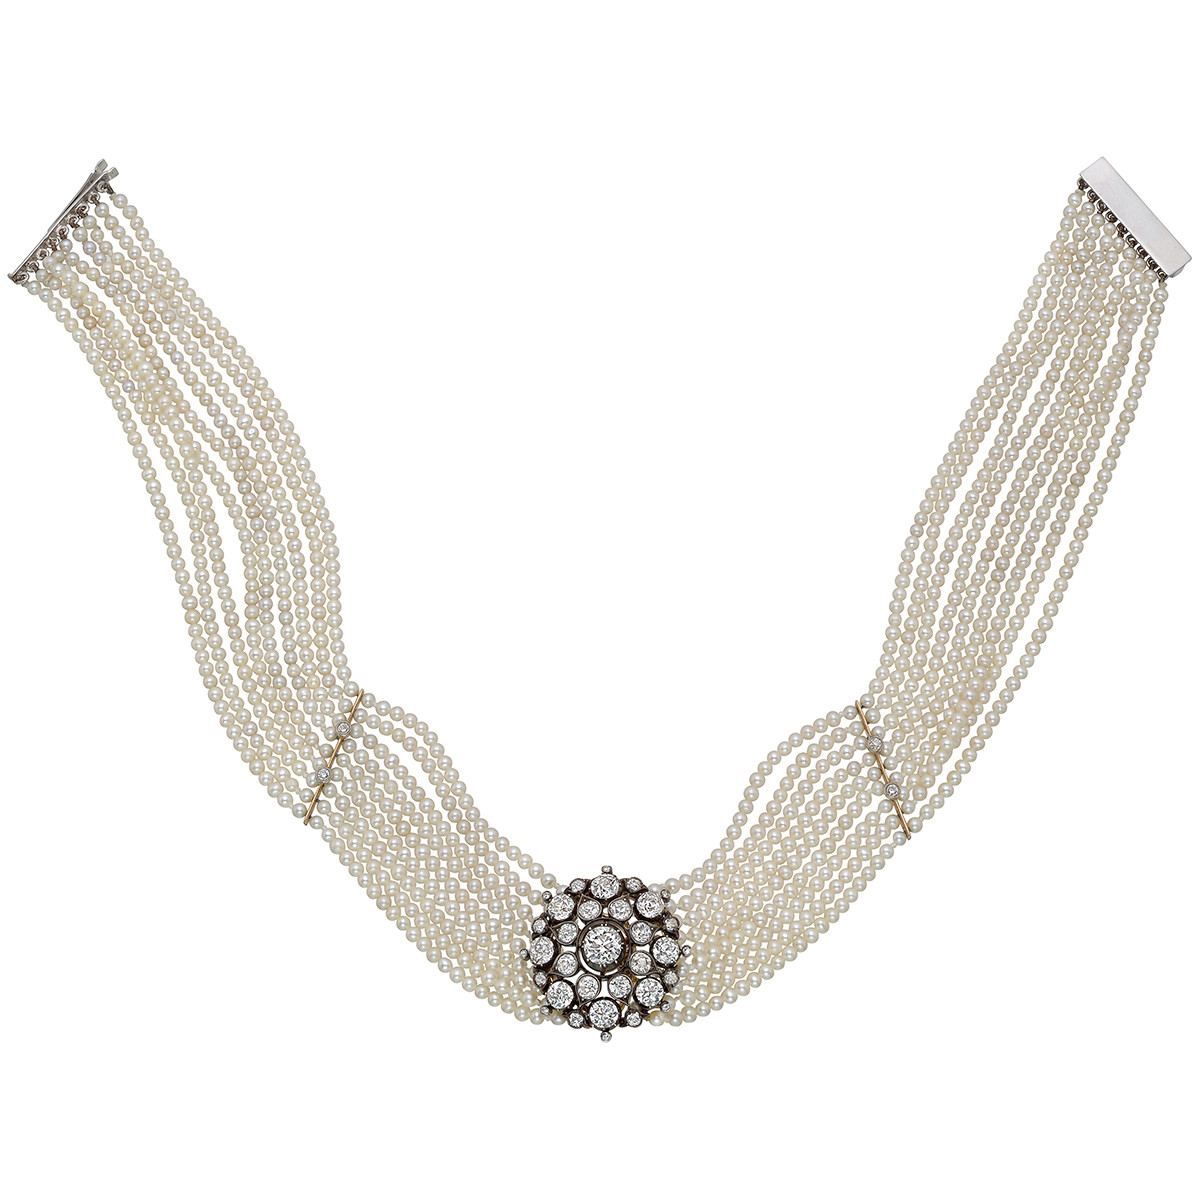 9-Strand Pearl & Diamond Choker Necklace